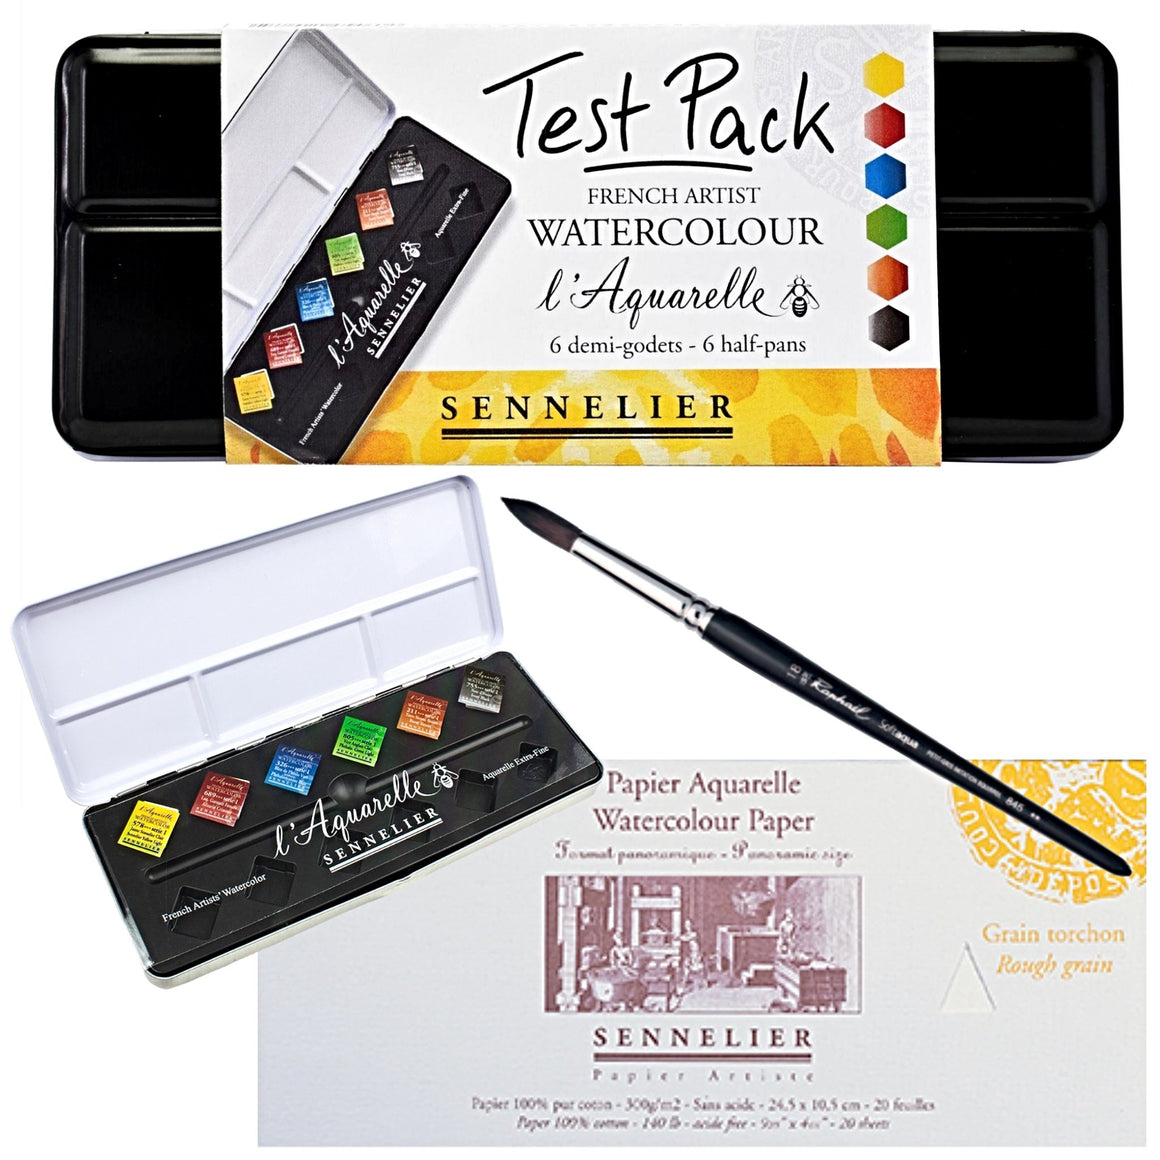 The set includes:  1x Sennelier L'Aquarelle Test Pack - 6 Half Pans 1x Sennelier Panoramic watercolour block - 10 x 25cm 1x Raphael Round Brush - 18